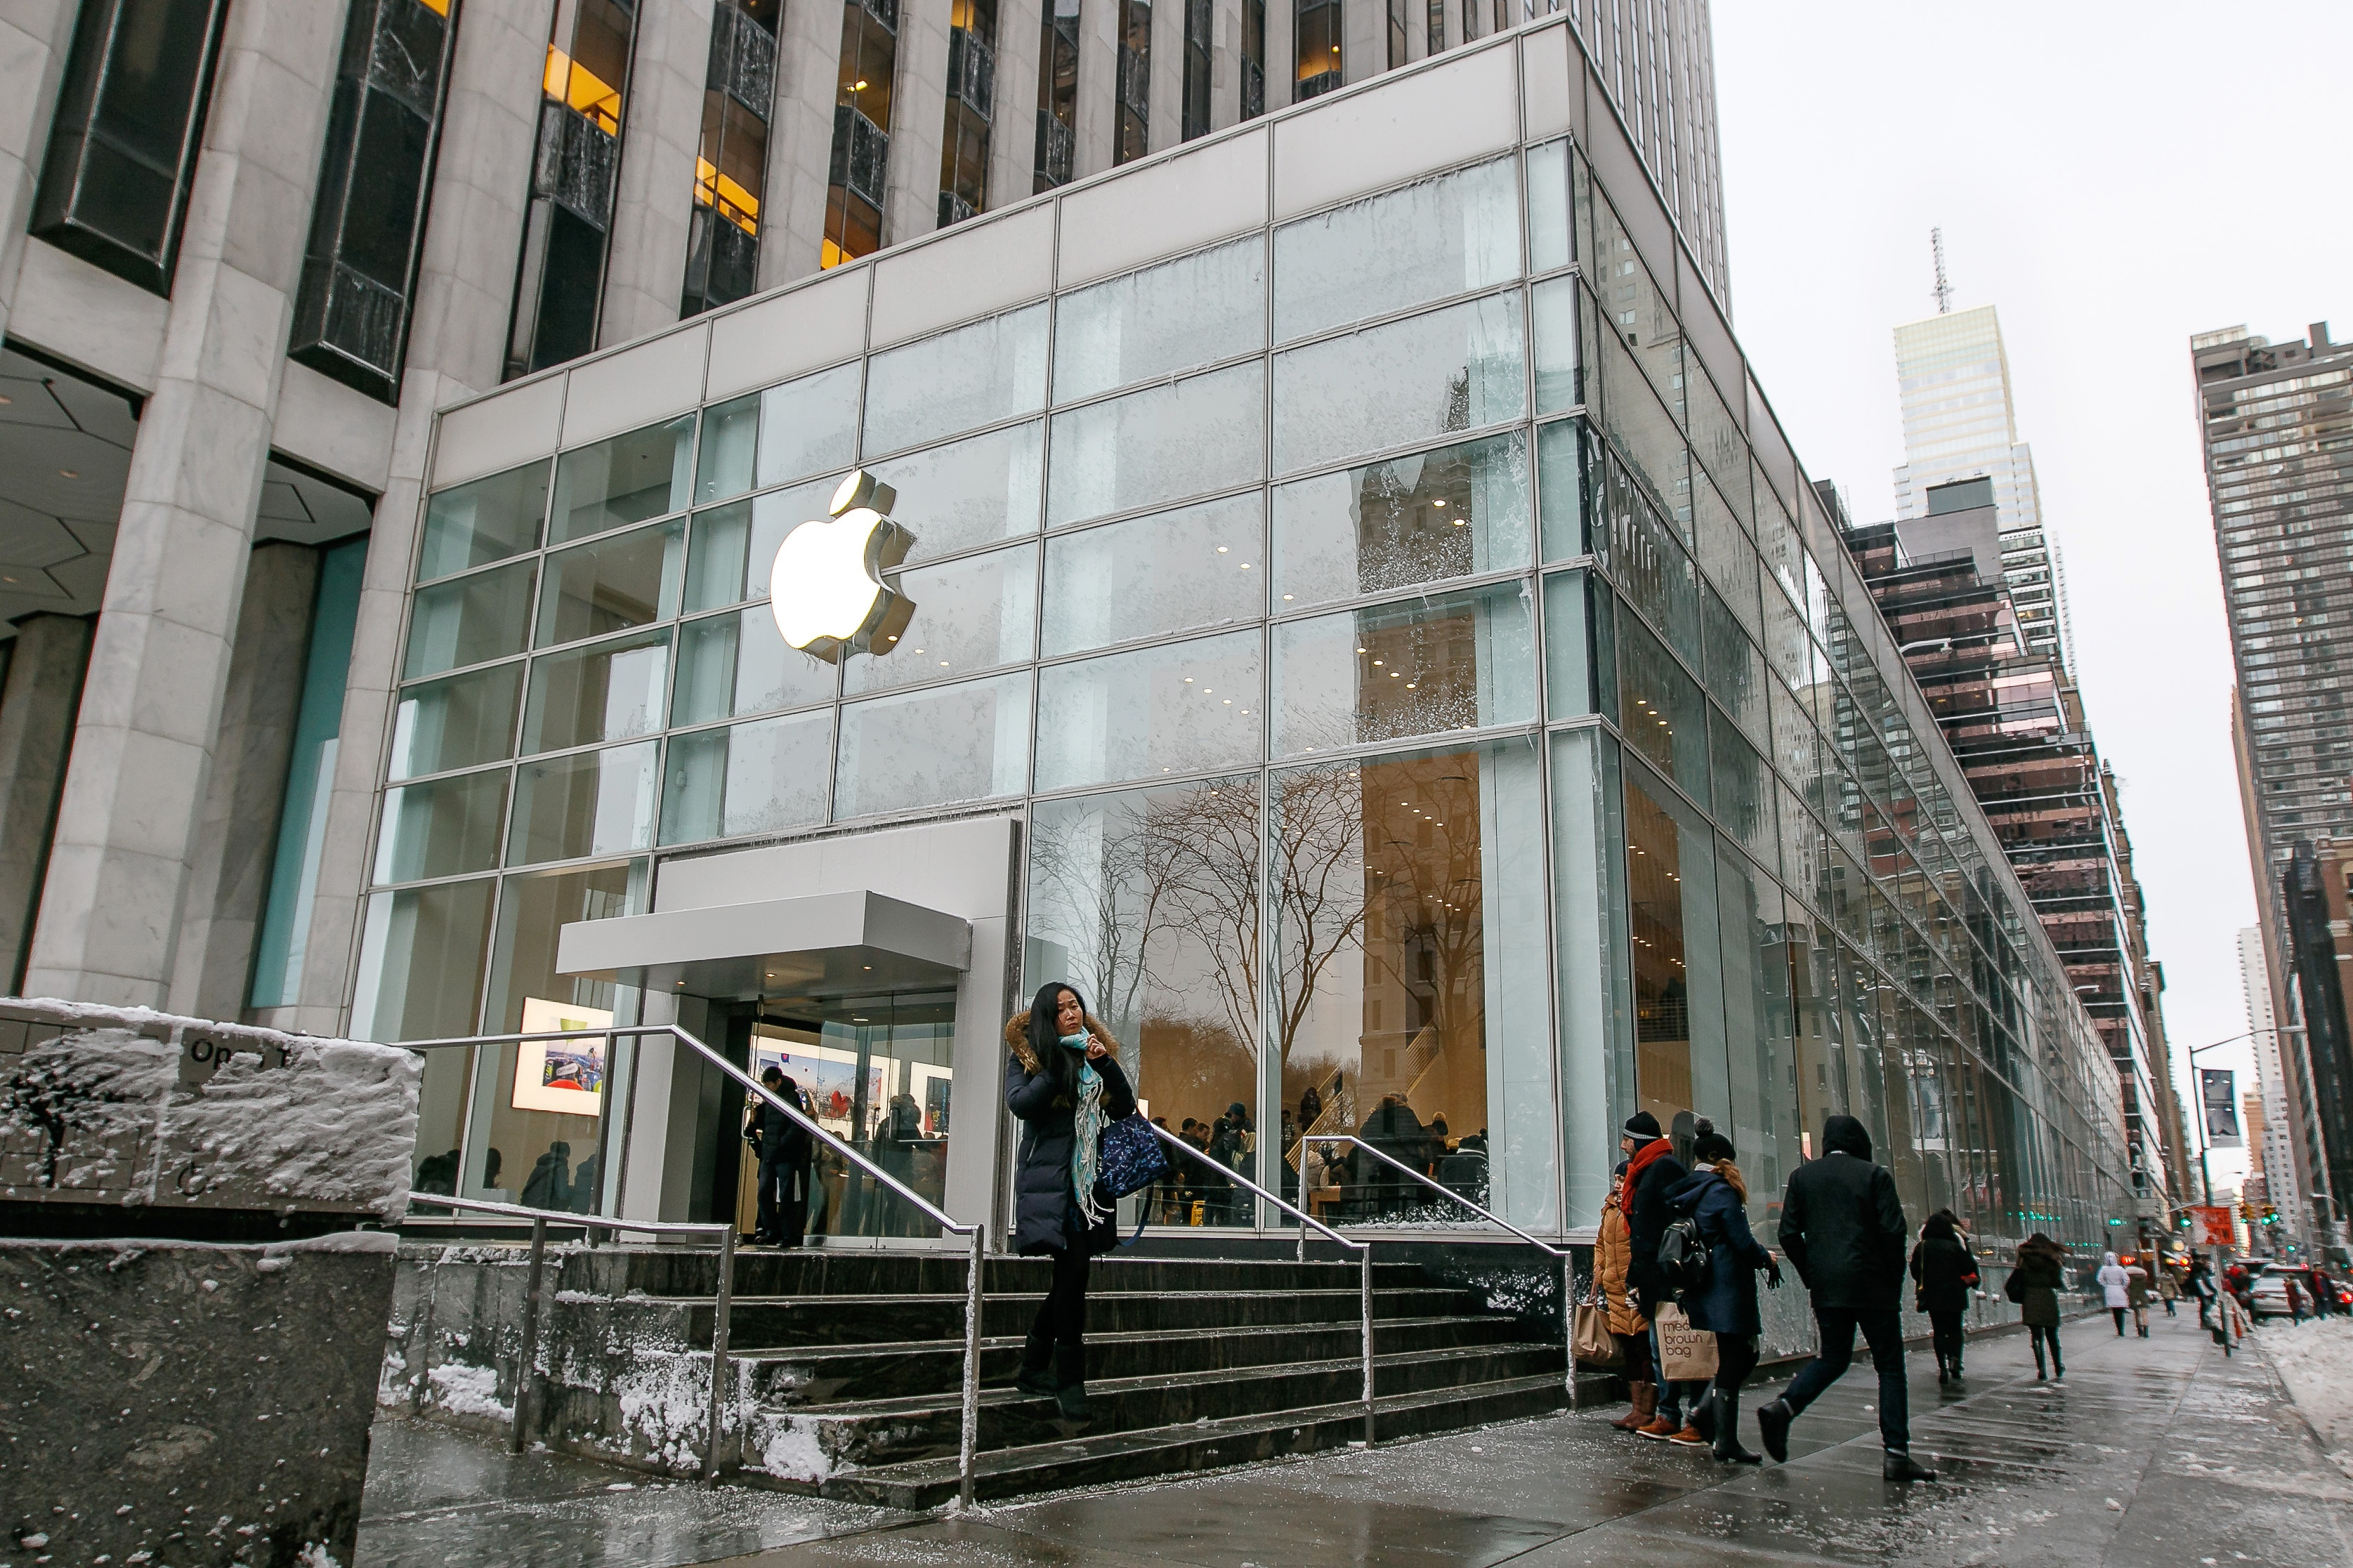 Shop Talk: Apple's New Town Squares Are a Smart Social Influence Play